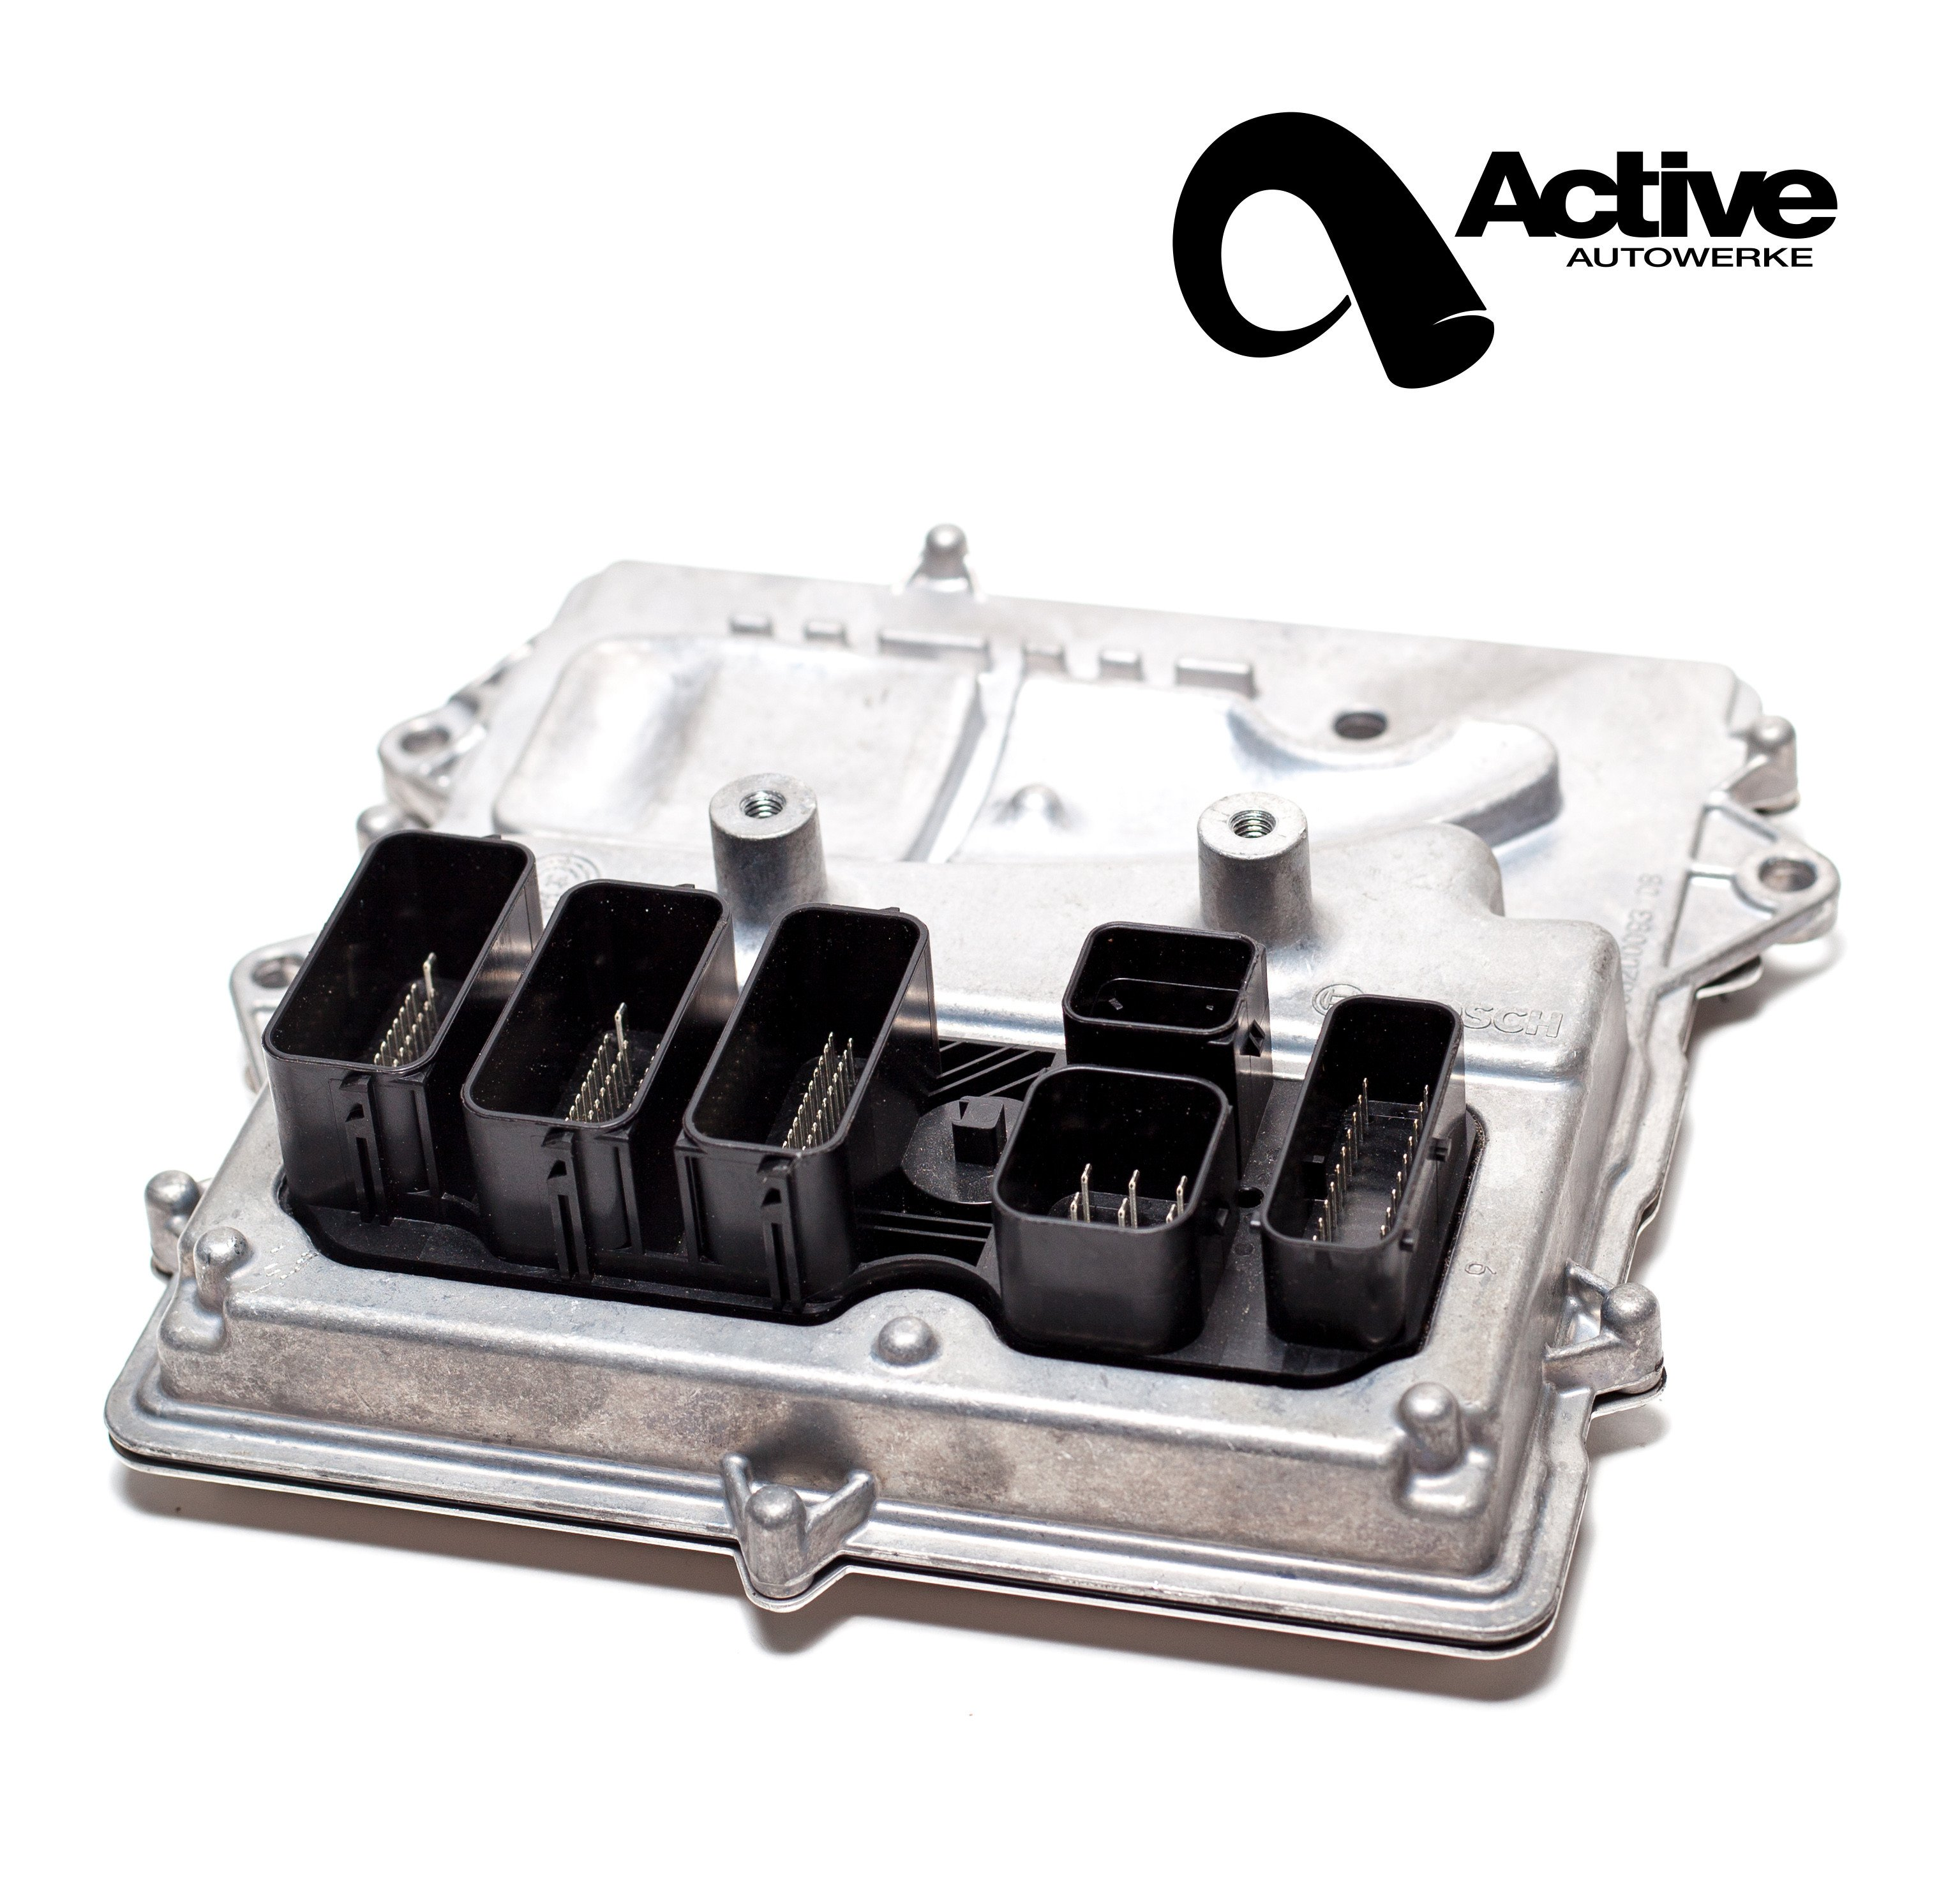 Active Autowerke - High Performance Software Tuning (BMW N20) MAIN